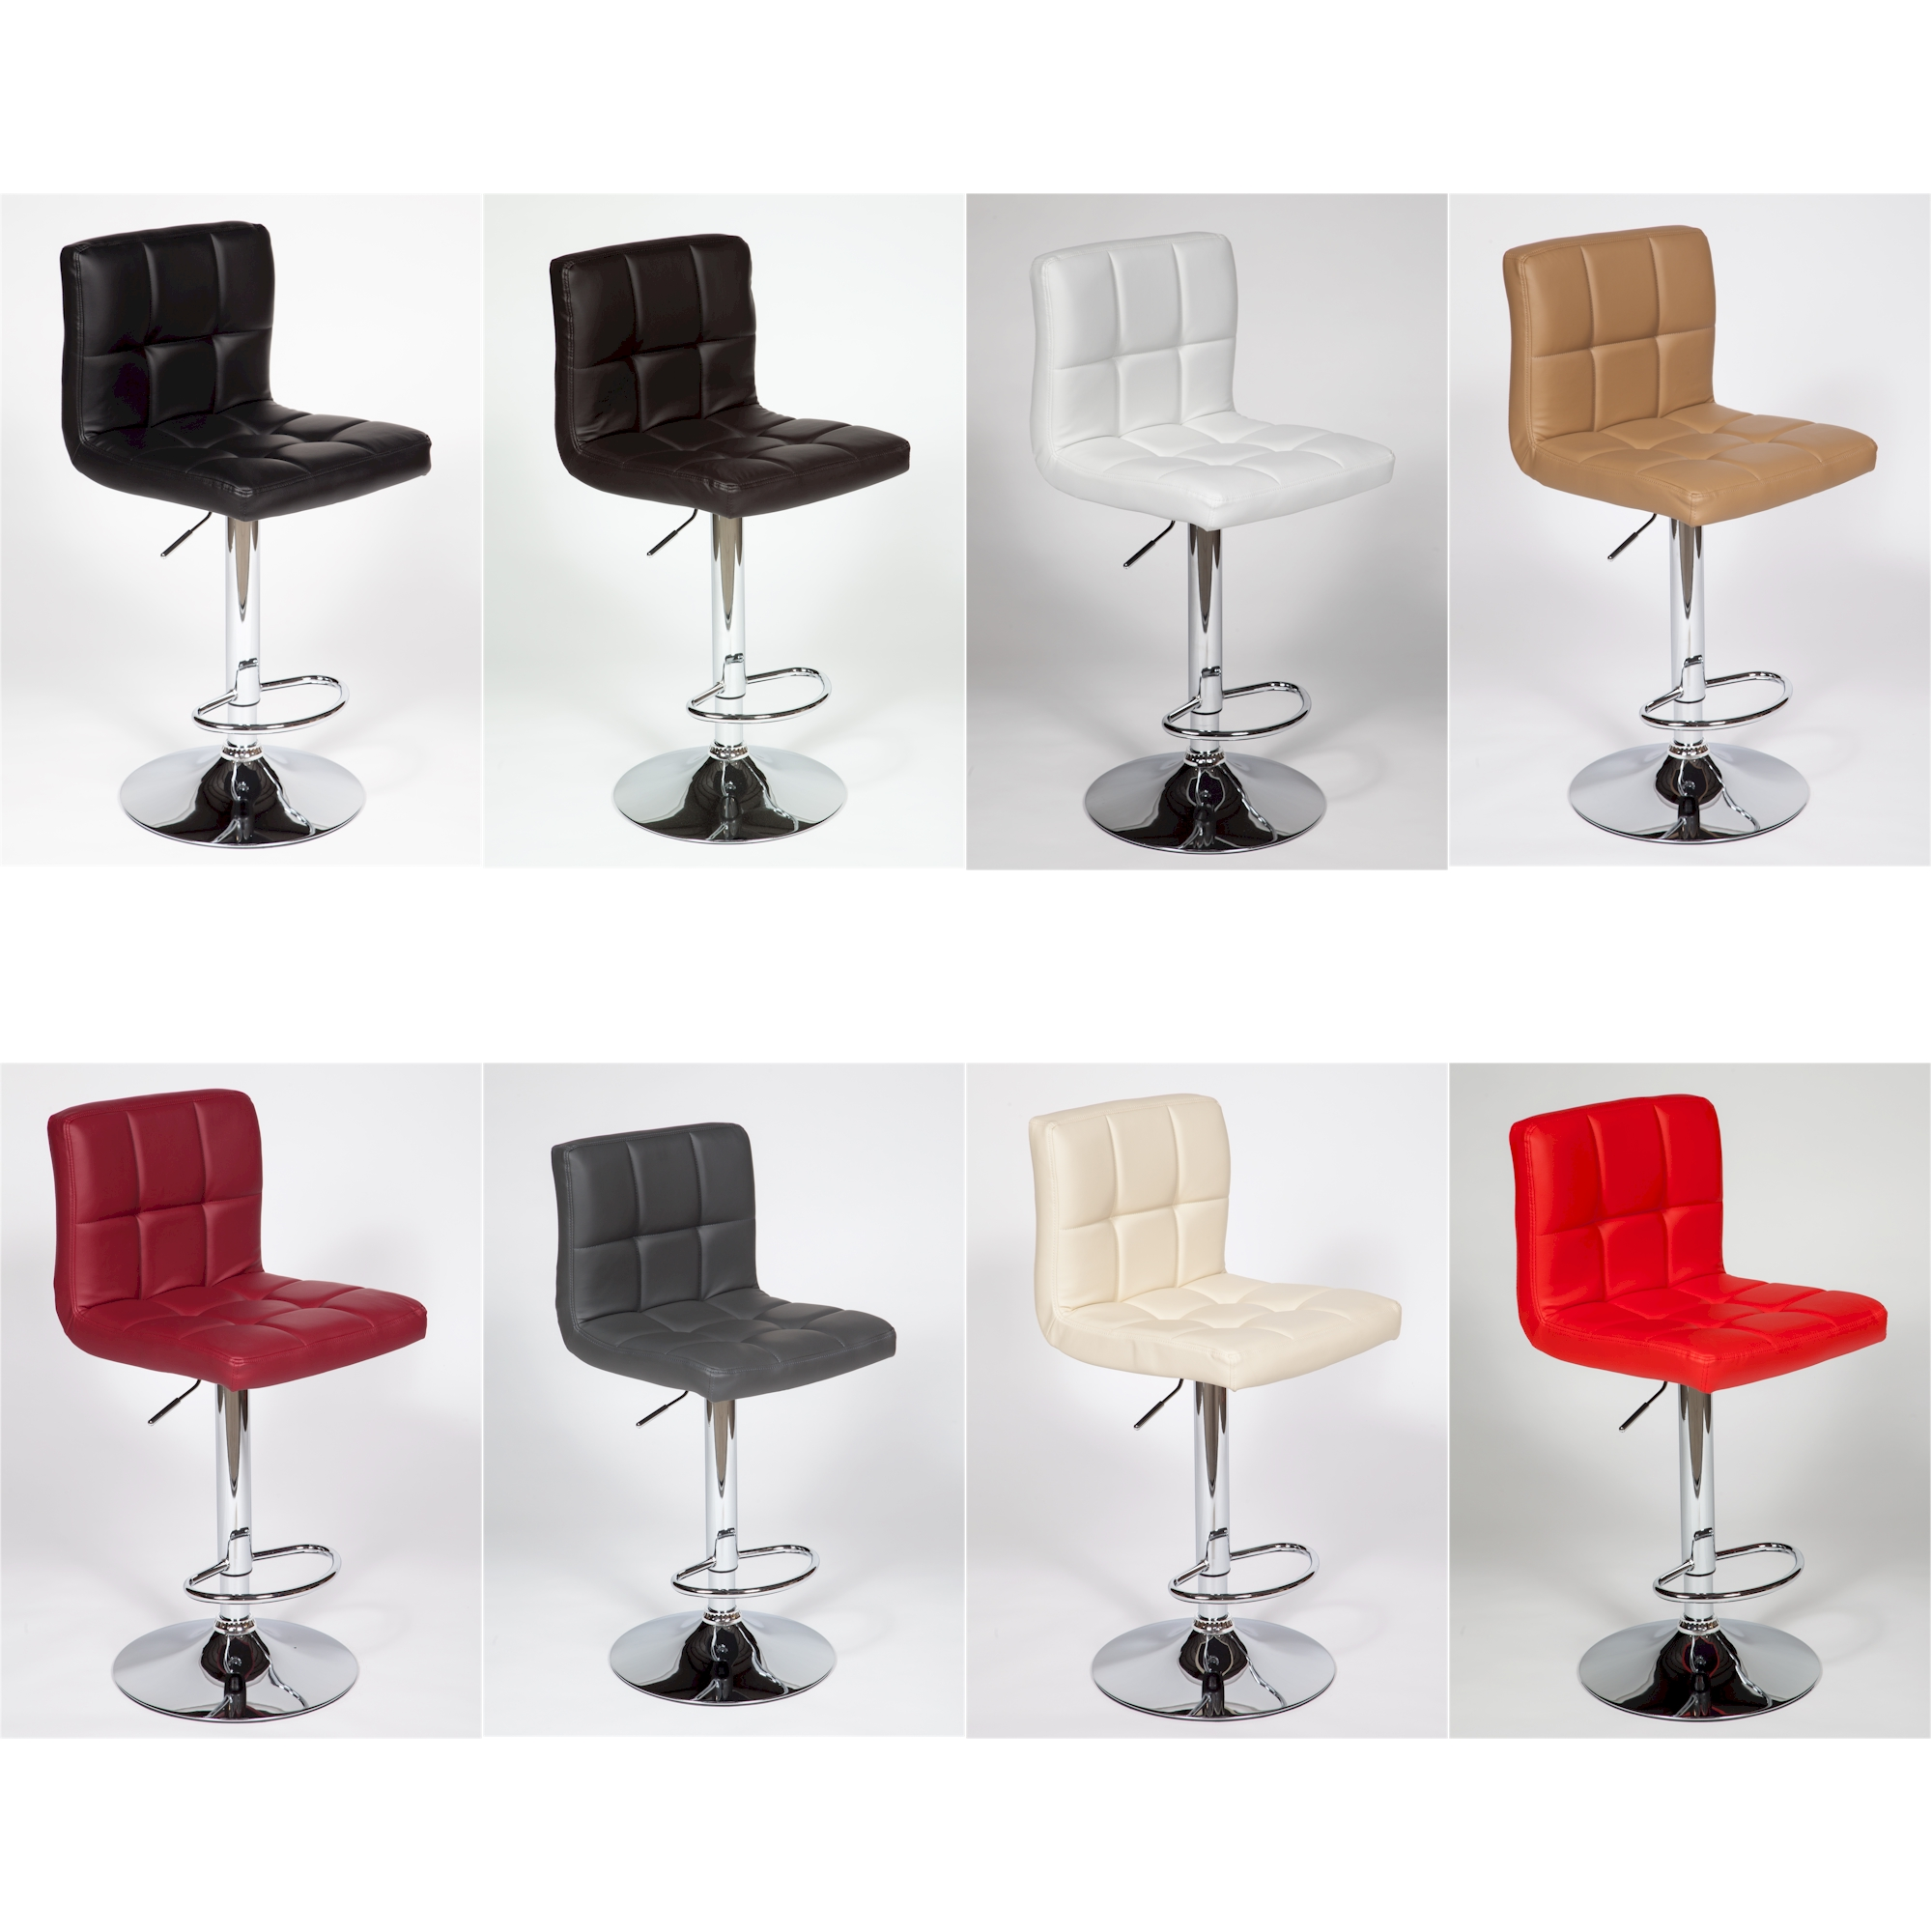 2 Modern Adjustable Quot Leather Quot Swivel Pub Style Bar Stools